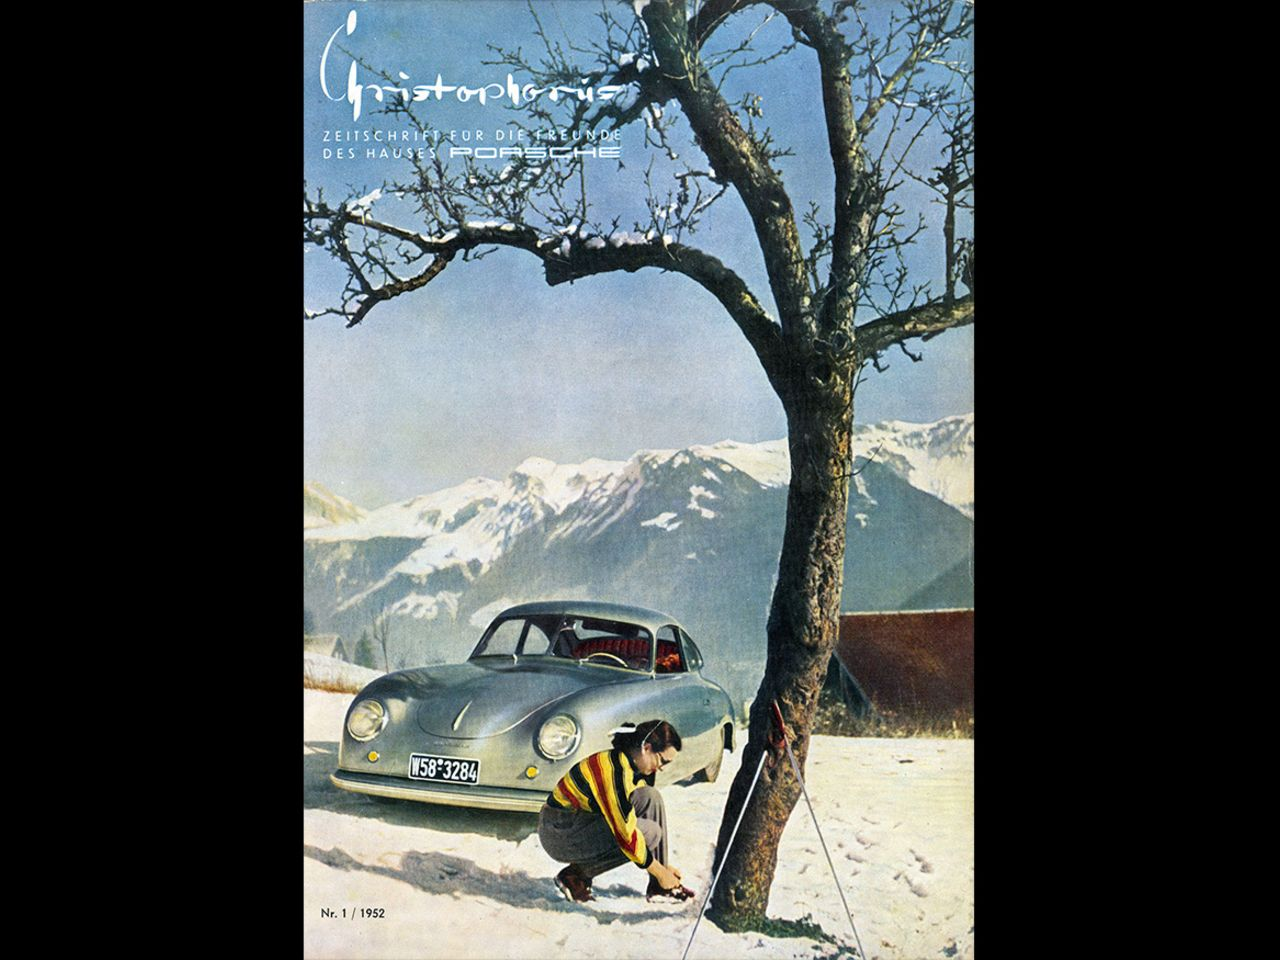 ... the Porsche customer magazine Christophorus as its artistic director. This is the cover of the first issue in 1952. Christophorus is the oldest customer magazine in the automobile industry, and continues to accompany the brand to this day.